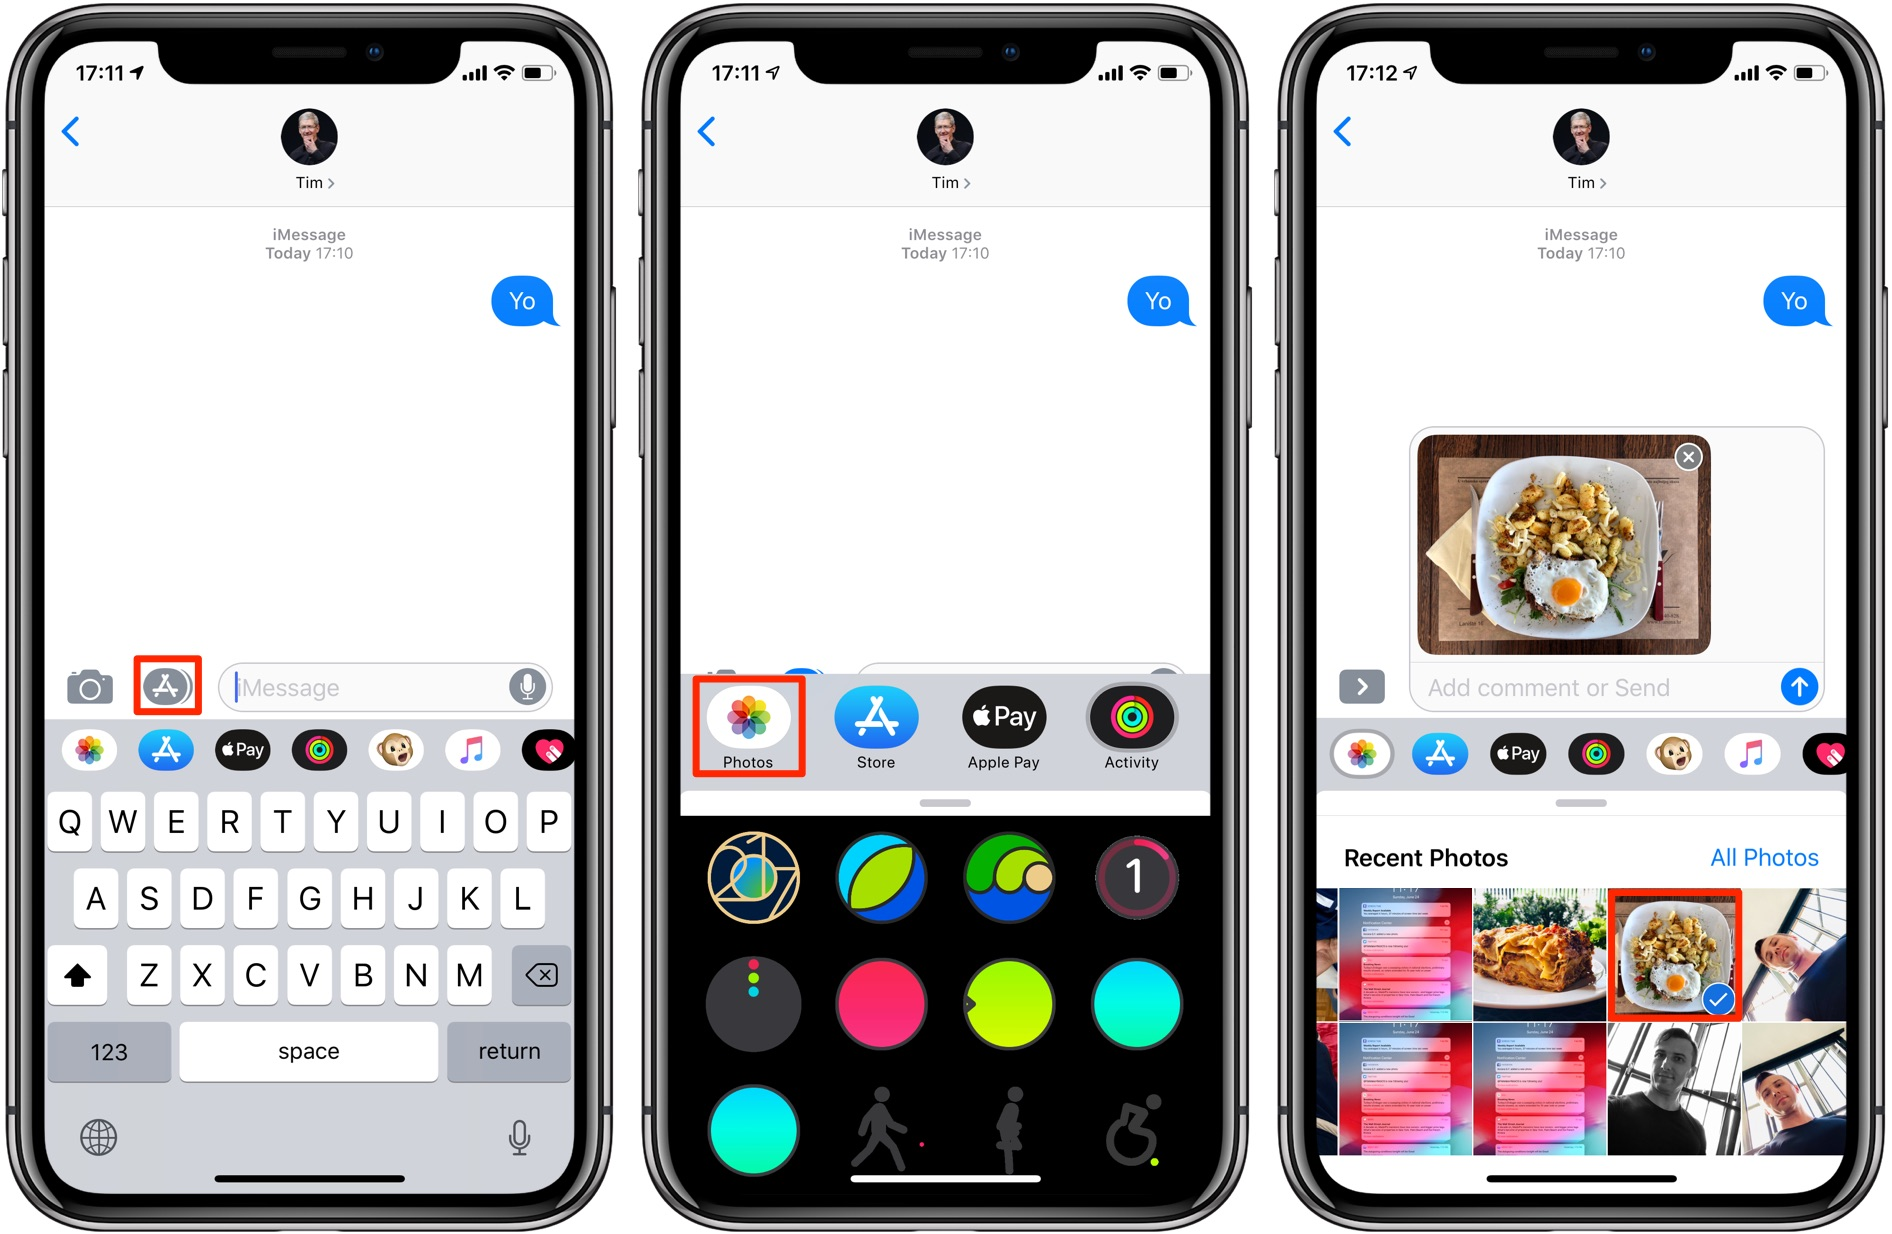 iOS 12 turns the image picker in Messages into a full-on iMessage app